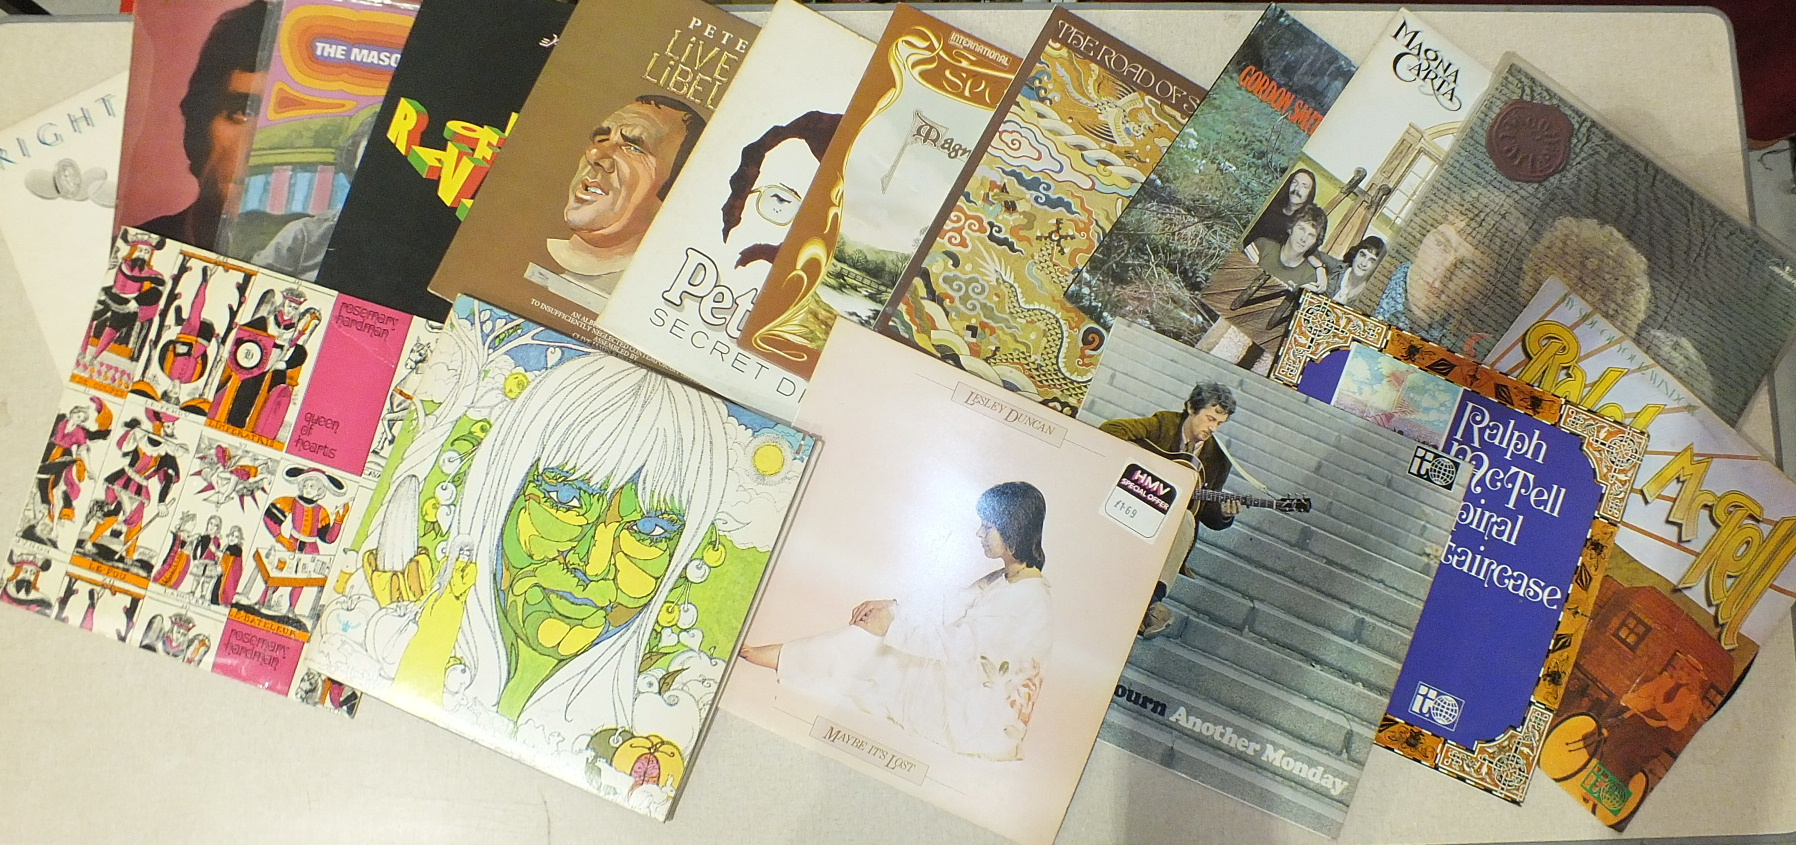 Lot 509 - A collection of various folk and blues LP records, including Rosemary Hardman 'Queen of Hearts',